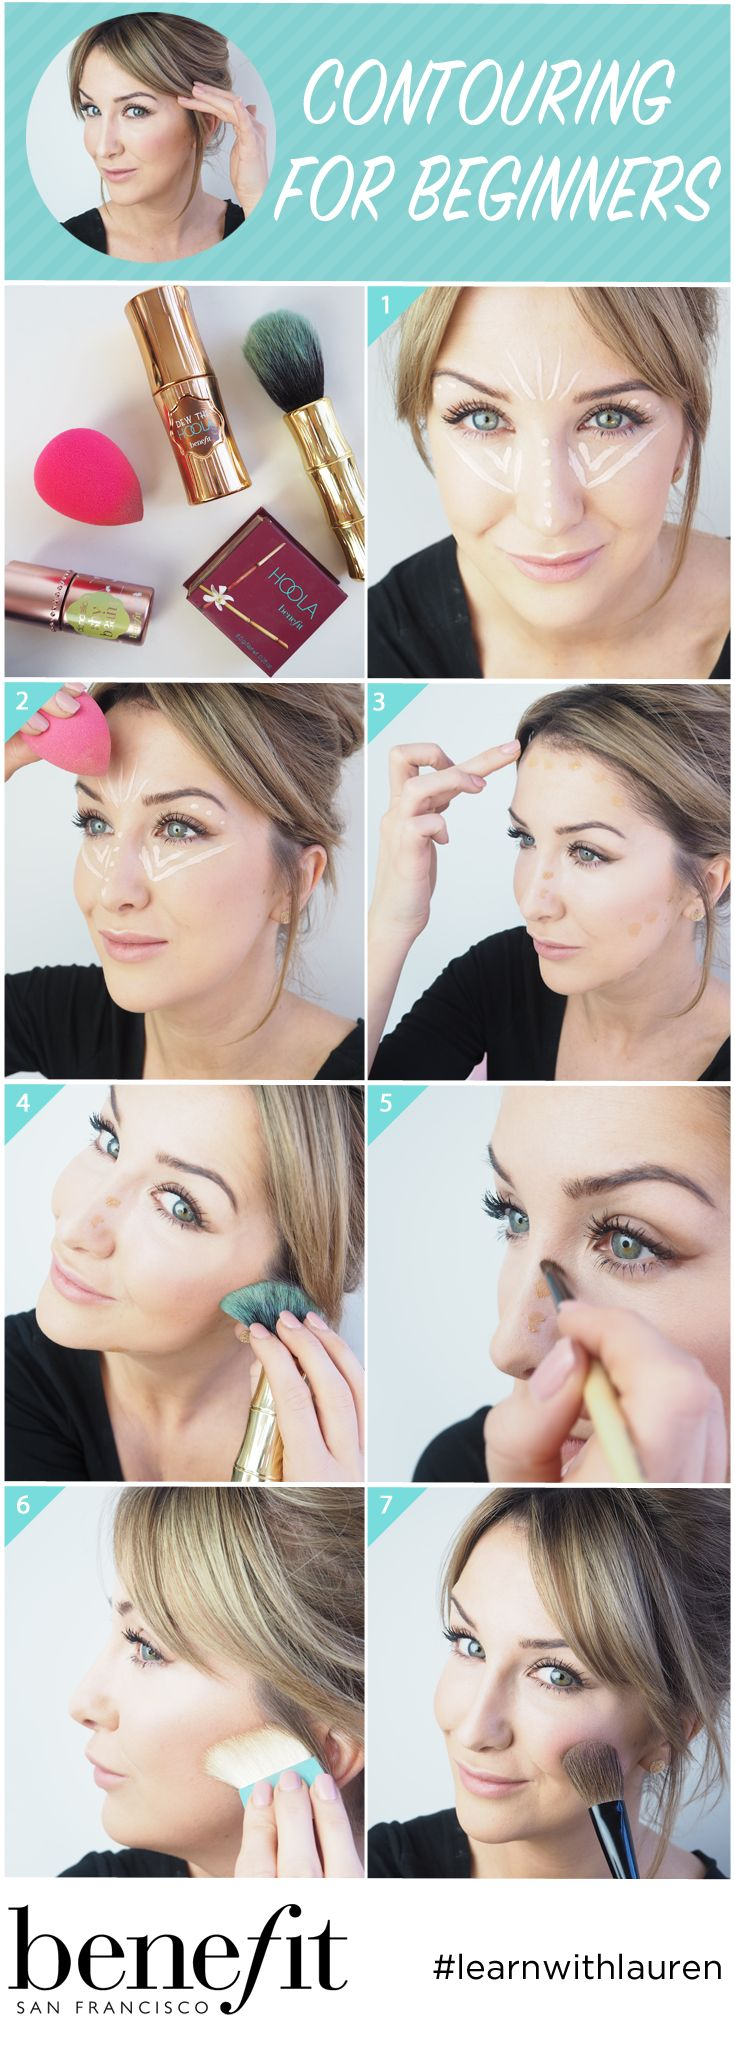 Simple contouring tutorial to add to your makeup routine. Start with Hello Flawless Oxygen Wow foundation for a light, and seamless liquid base. Build with a no shimmer, no shine shy beam for a natural looking highlight. Finish with hoola for a matte bronzing powder to sculpt cheekbones.